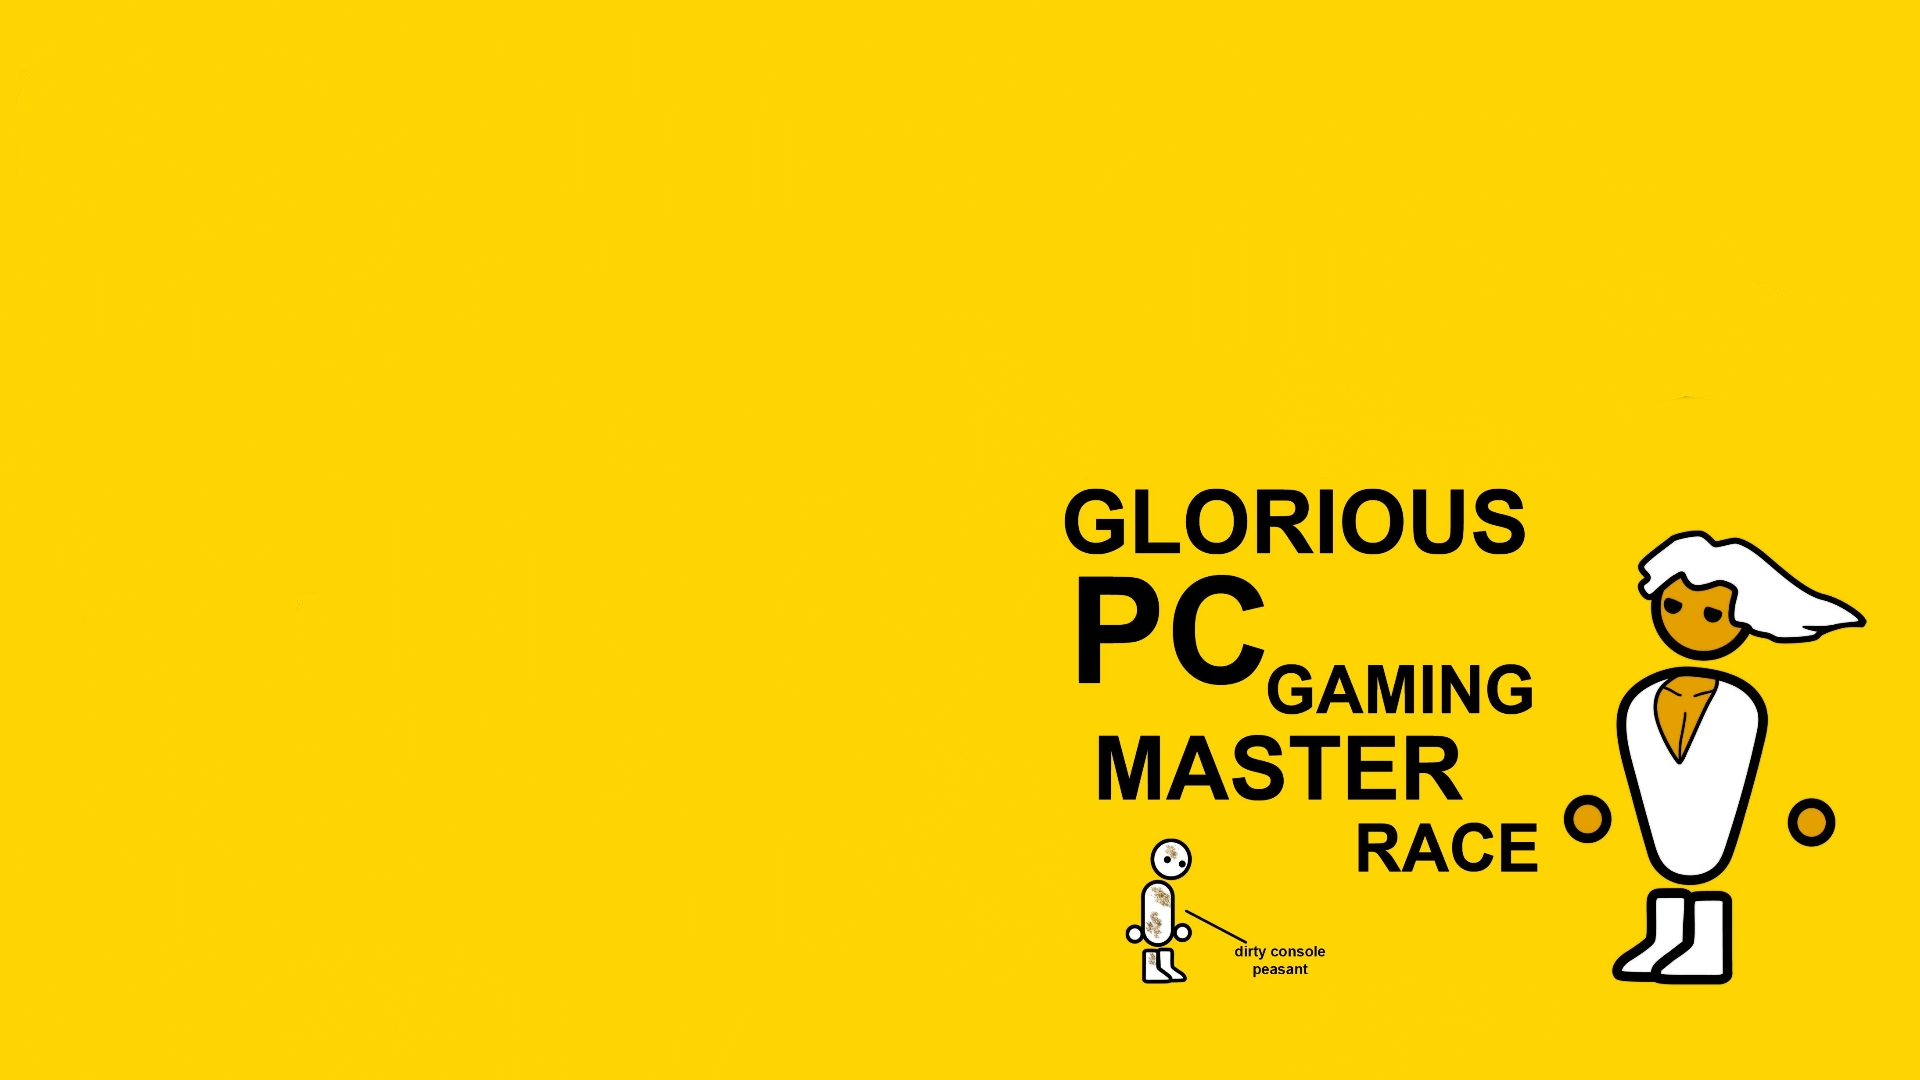 Pc Master Race Wallpaper 1920x1080: 1920x1080px PC Master Race Wallpapers